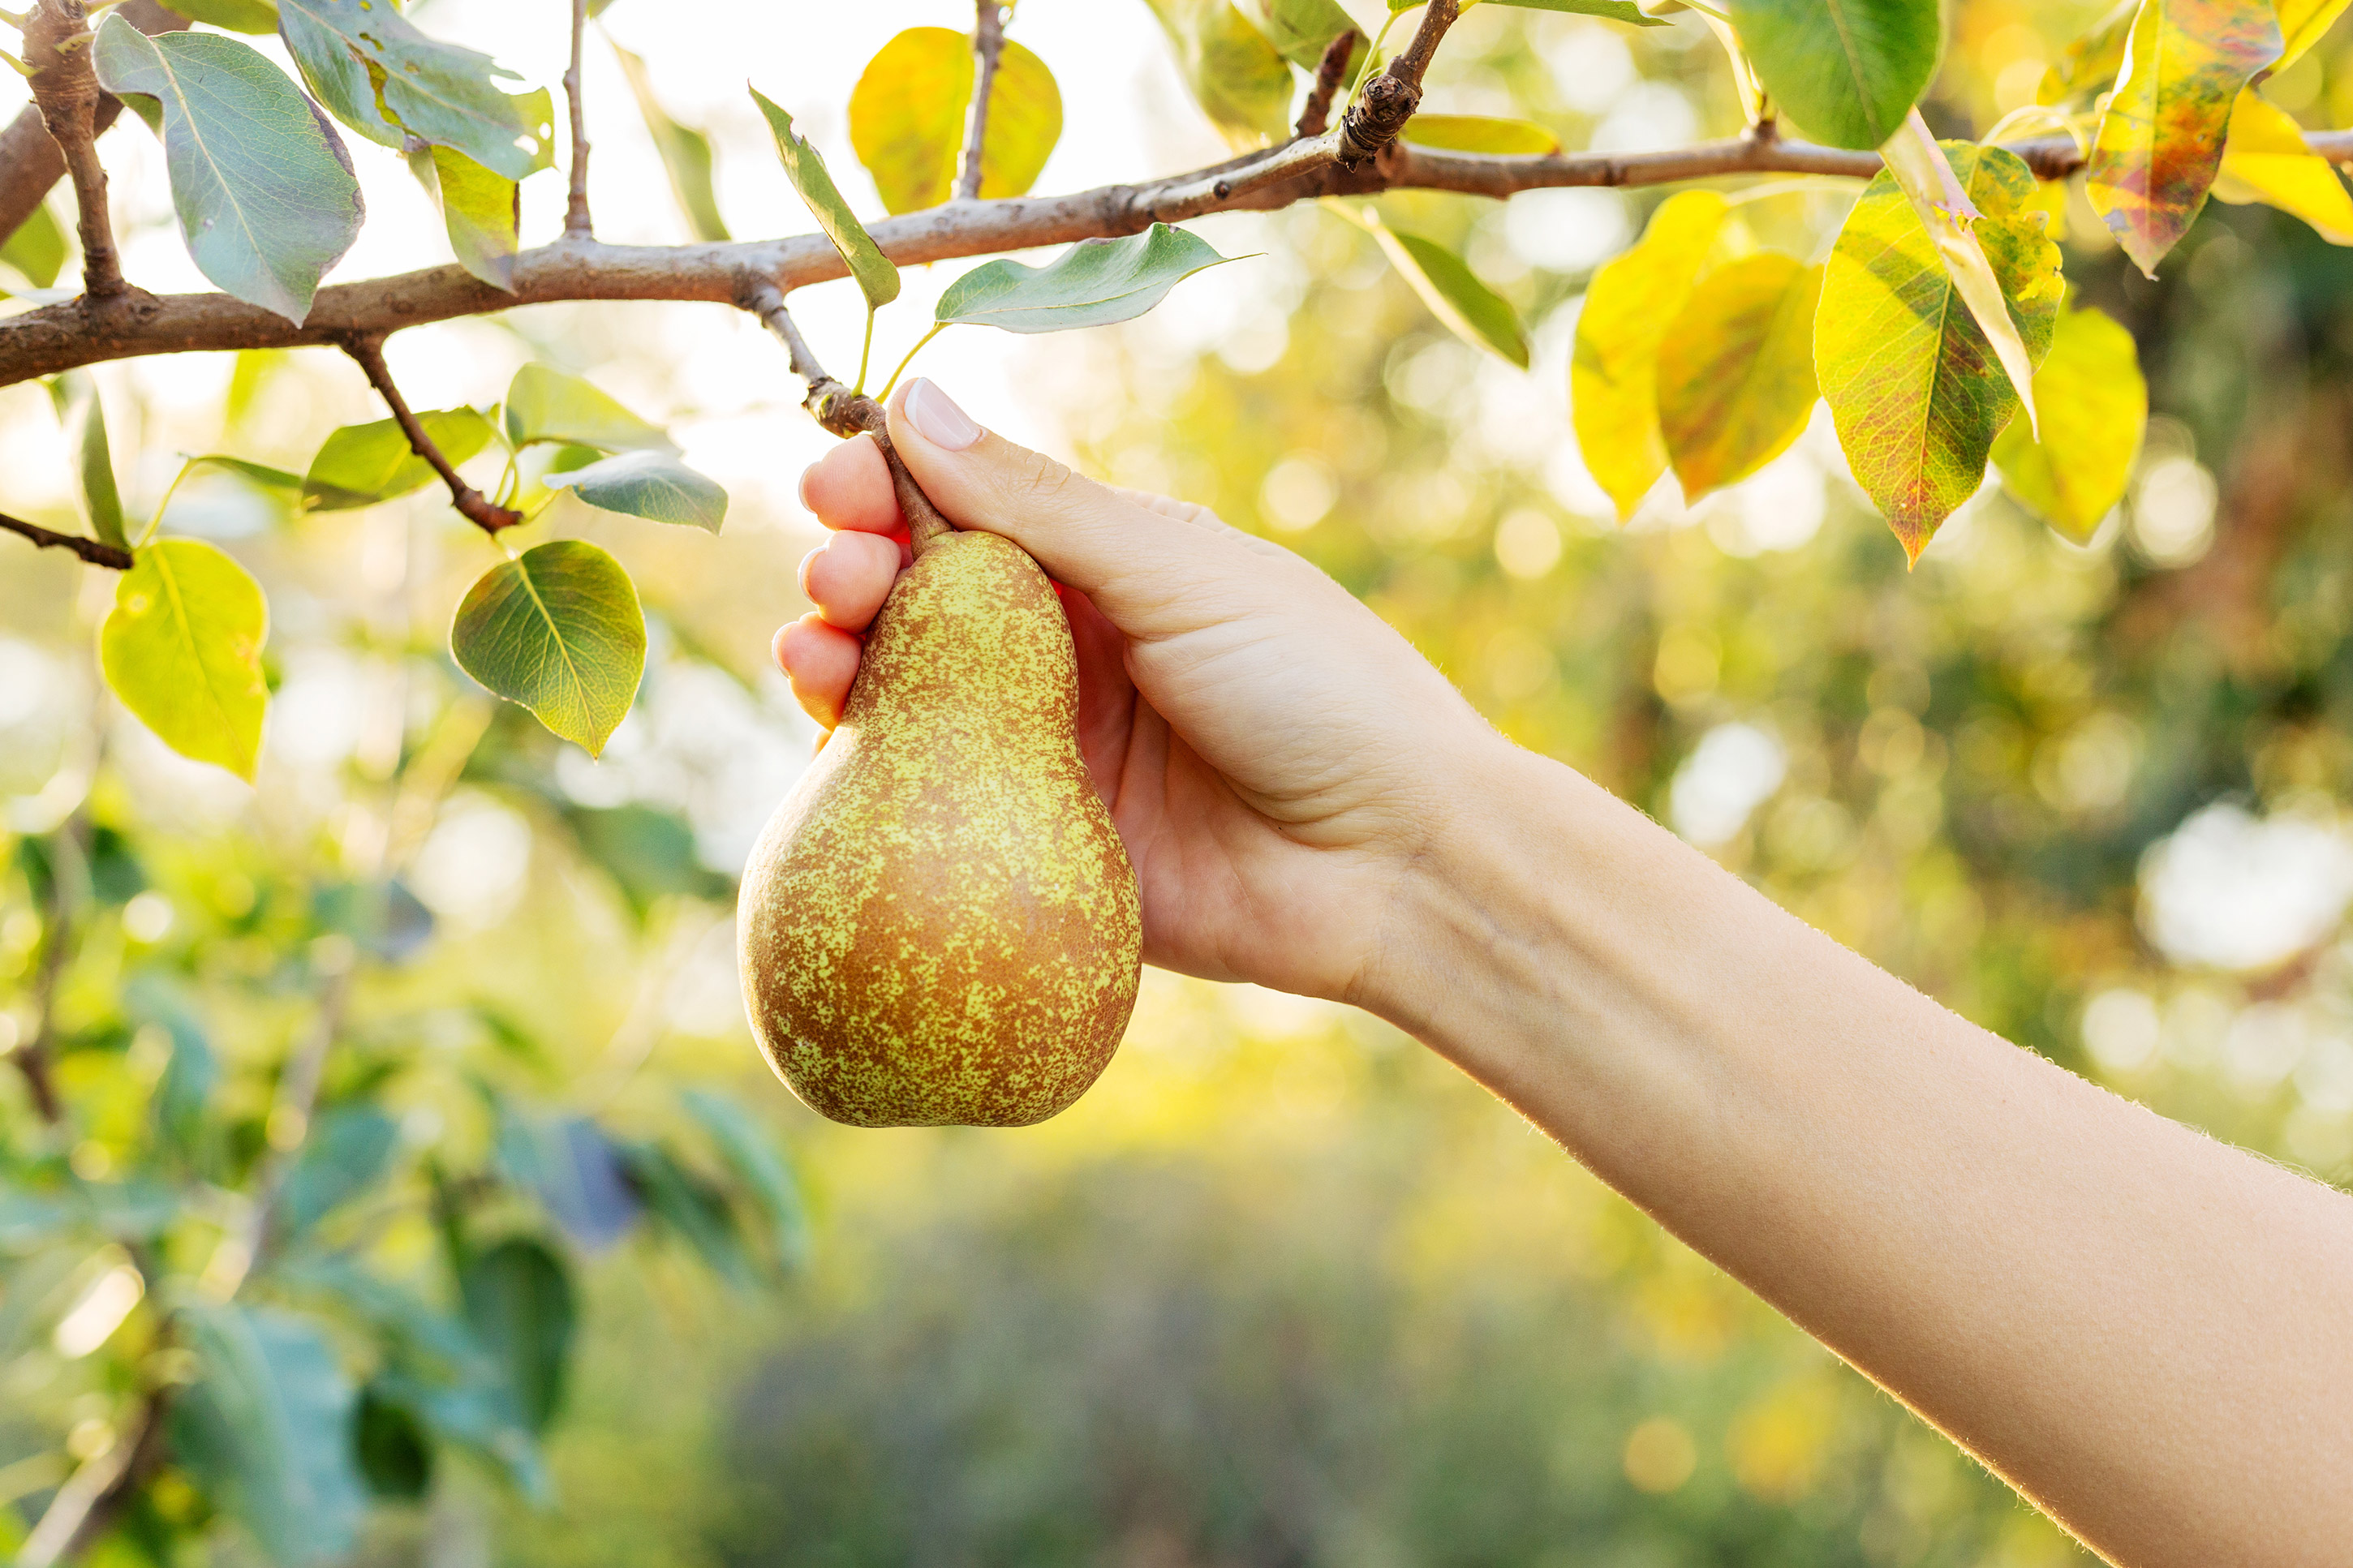 Angelys Pear Fruit Of Knowledge Fruit Of Joy Fragrance Reviews Most often, this applies when an individual has missed some cue to stop, thus creating a useless or bothersome excess. angelys pear fruit of knowledge fruit